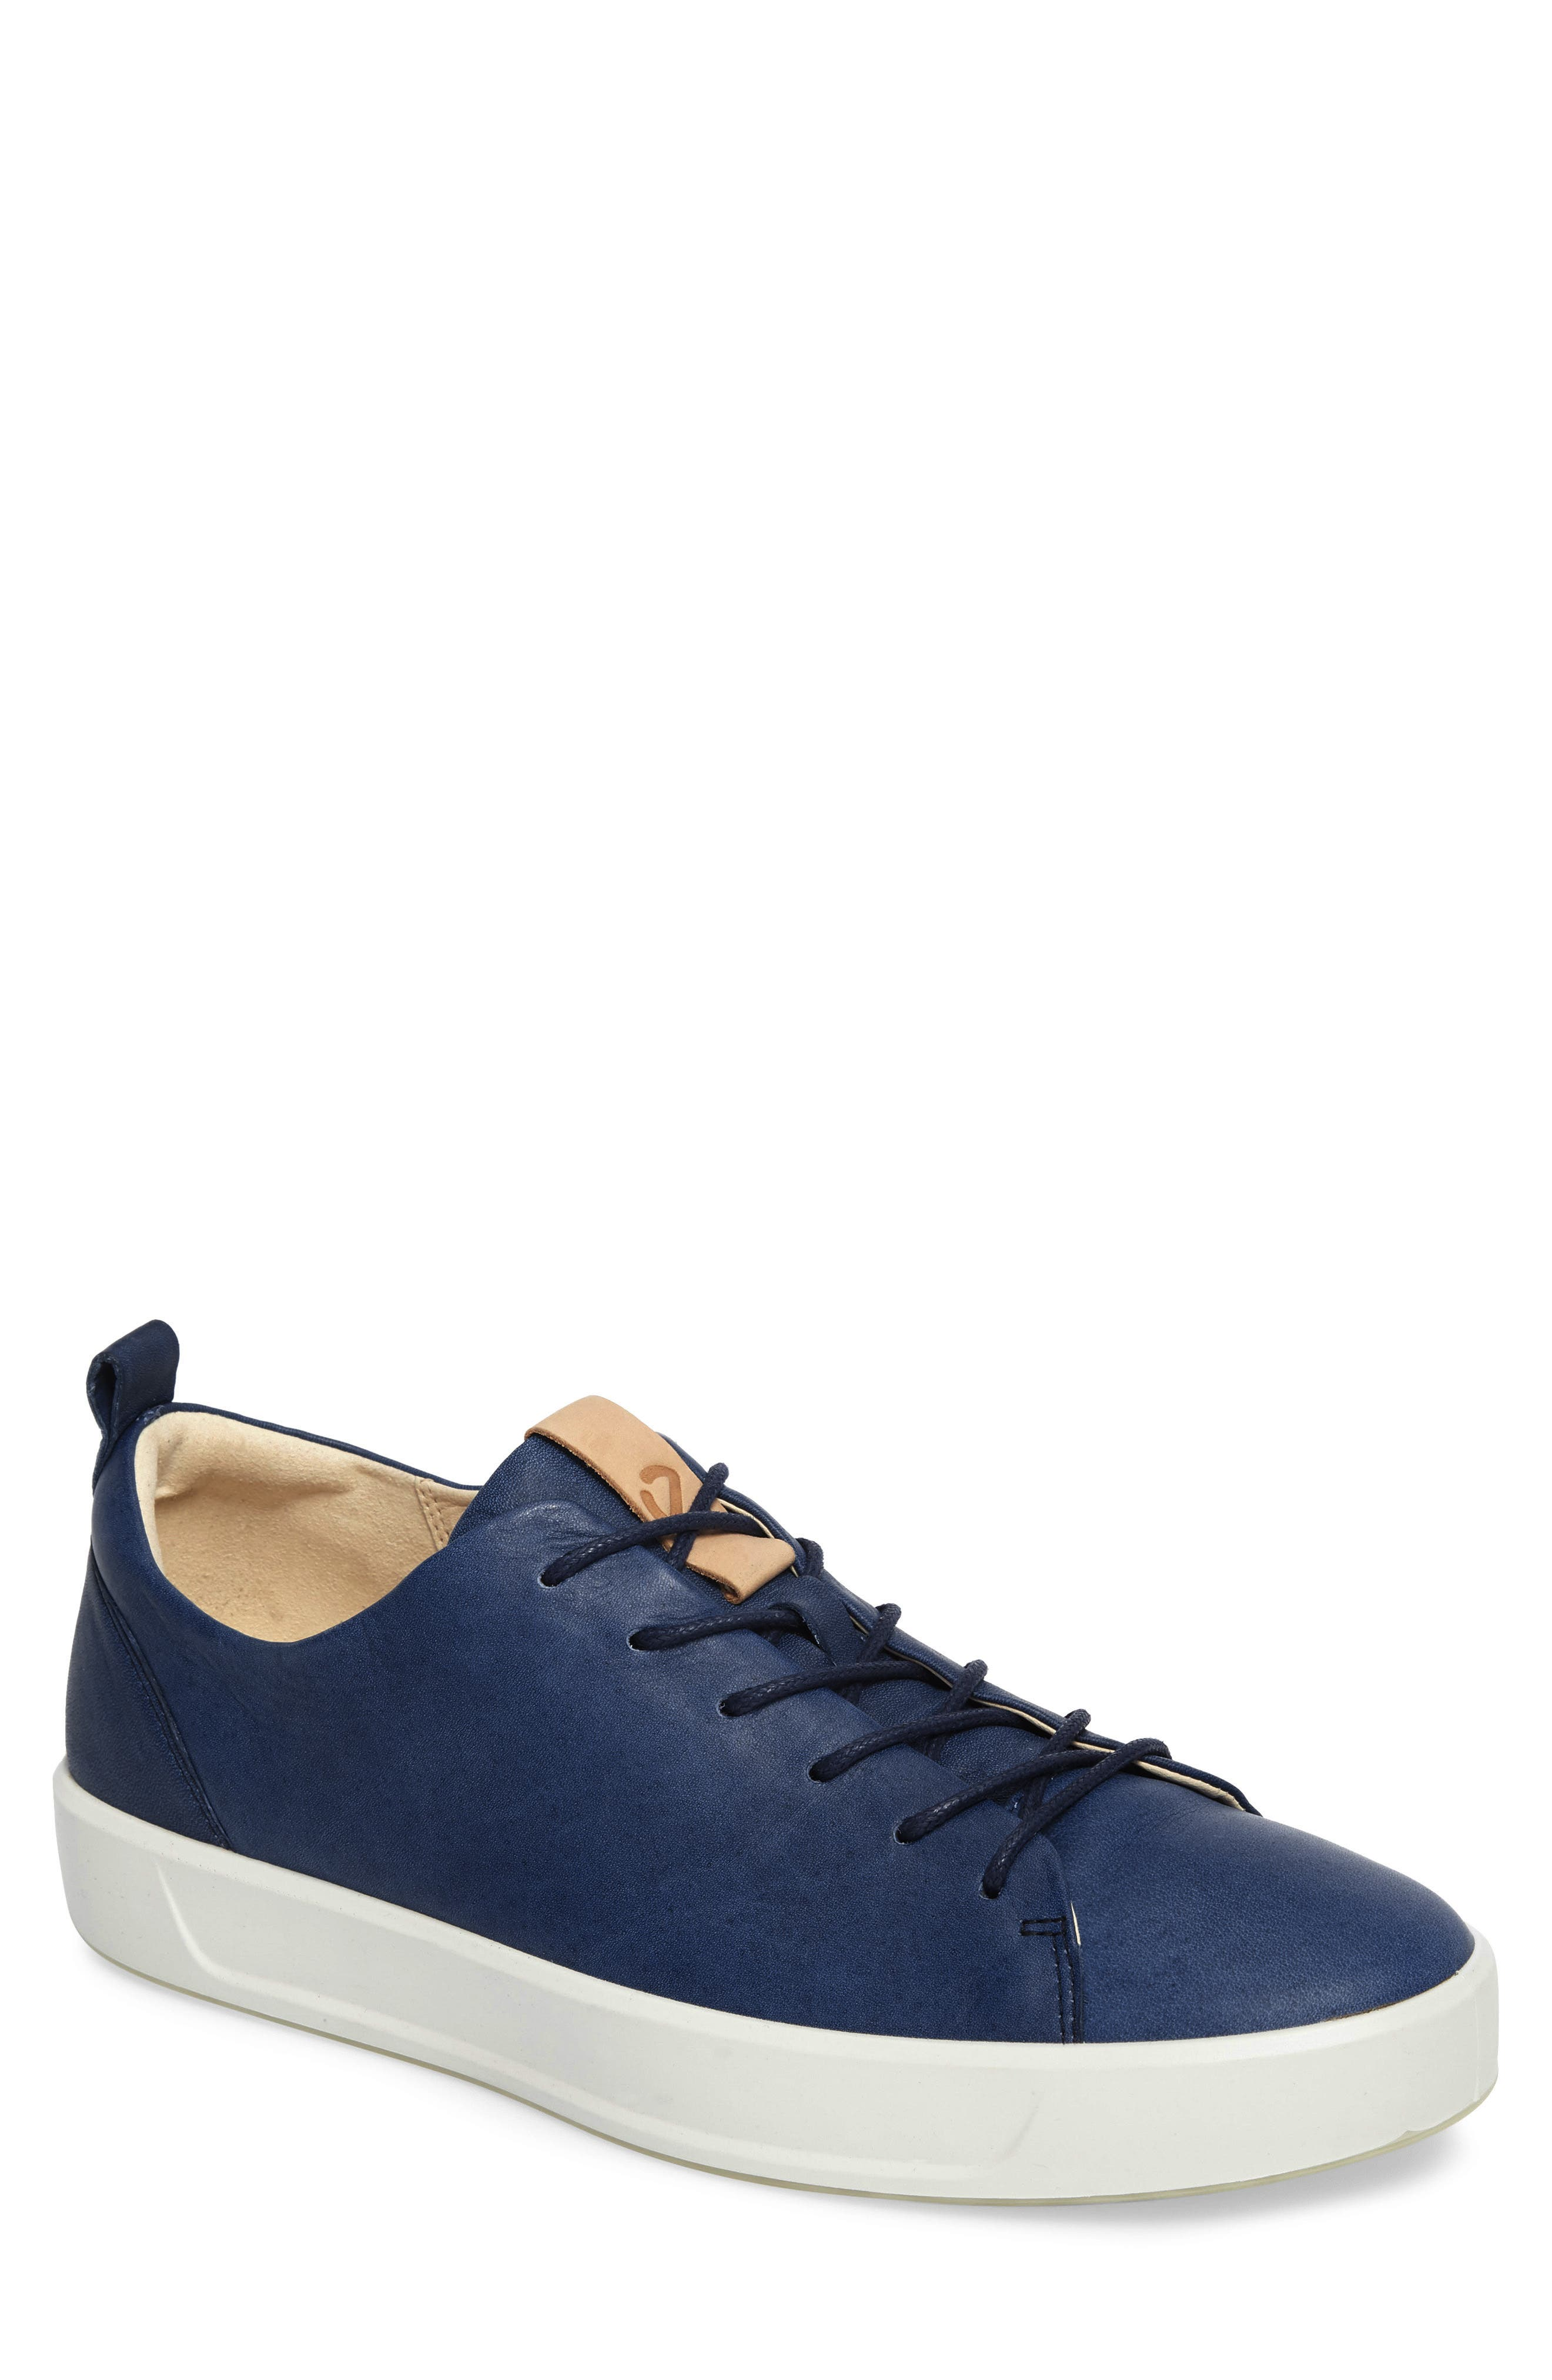 ,                             Soft 8 Sneaker,                             Main thumbnail 138, color,                             454